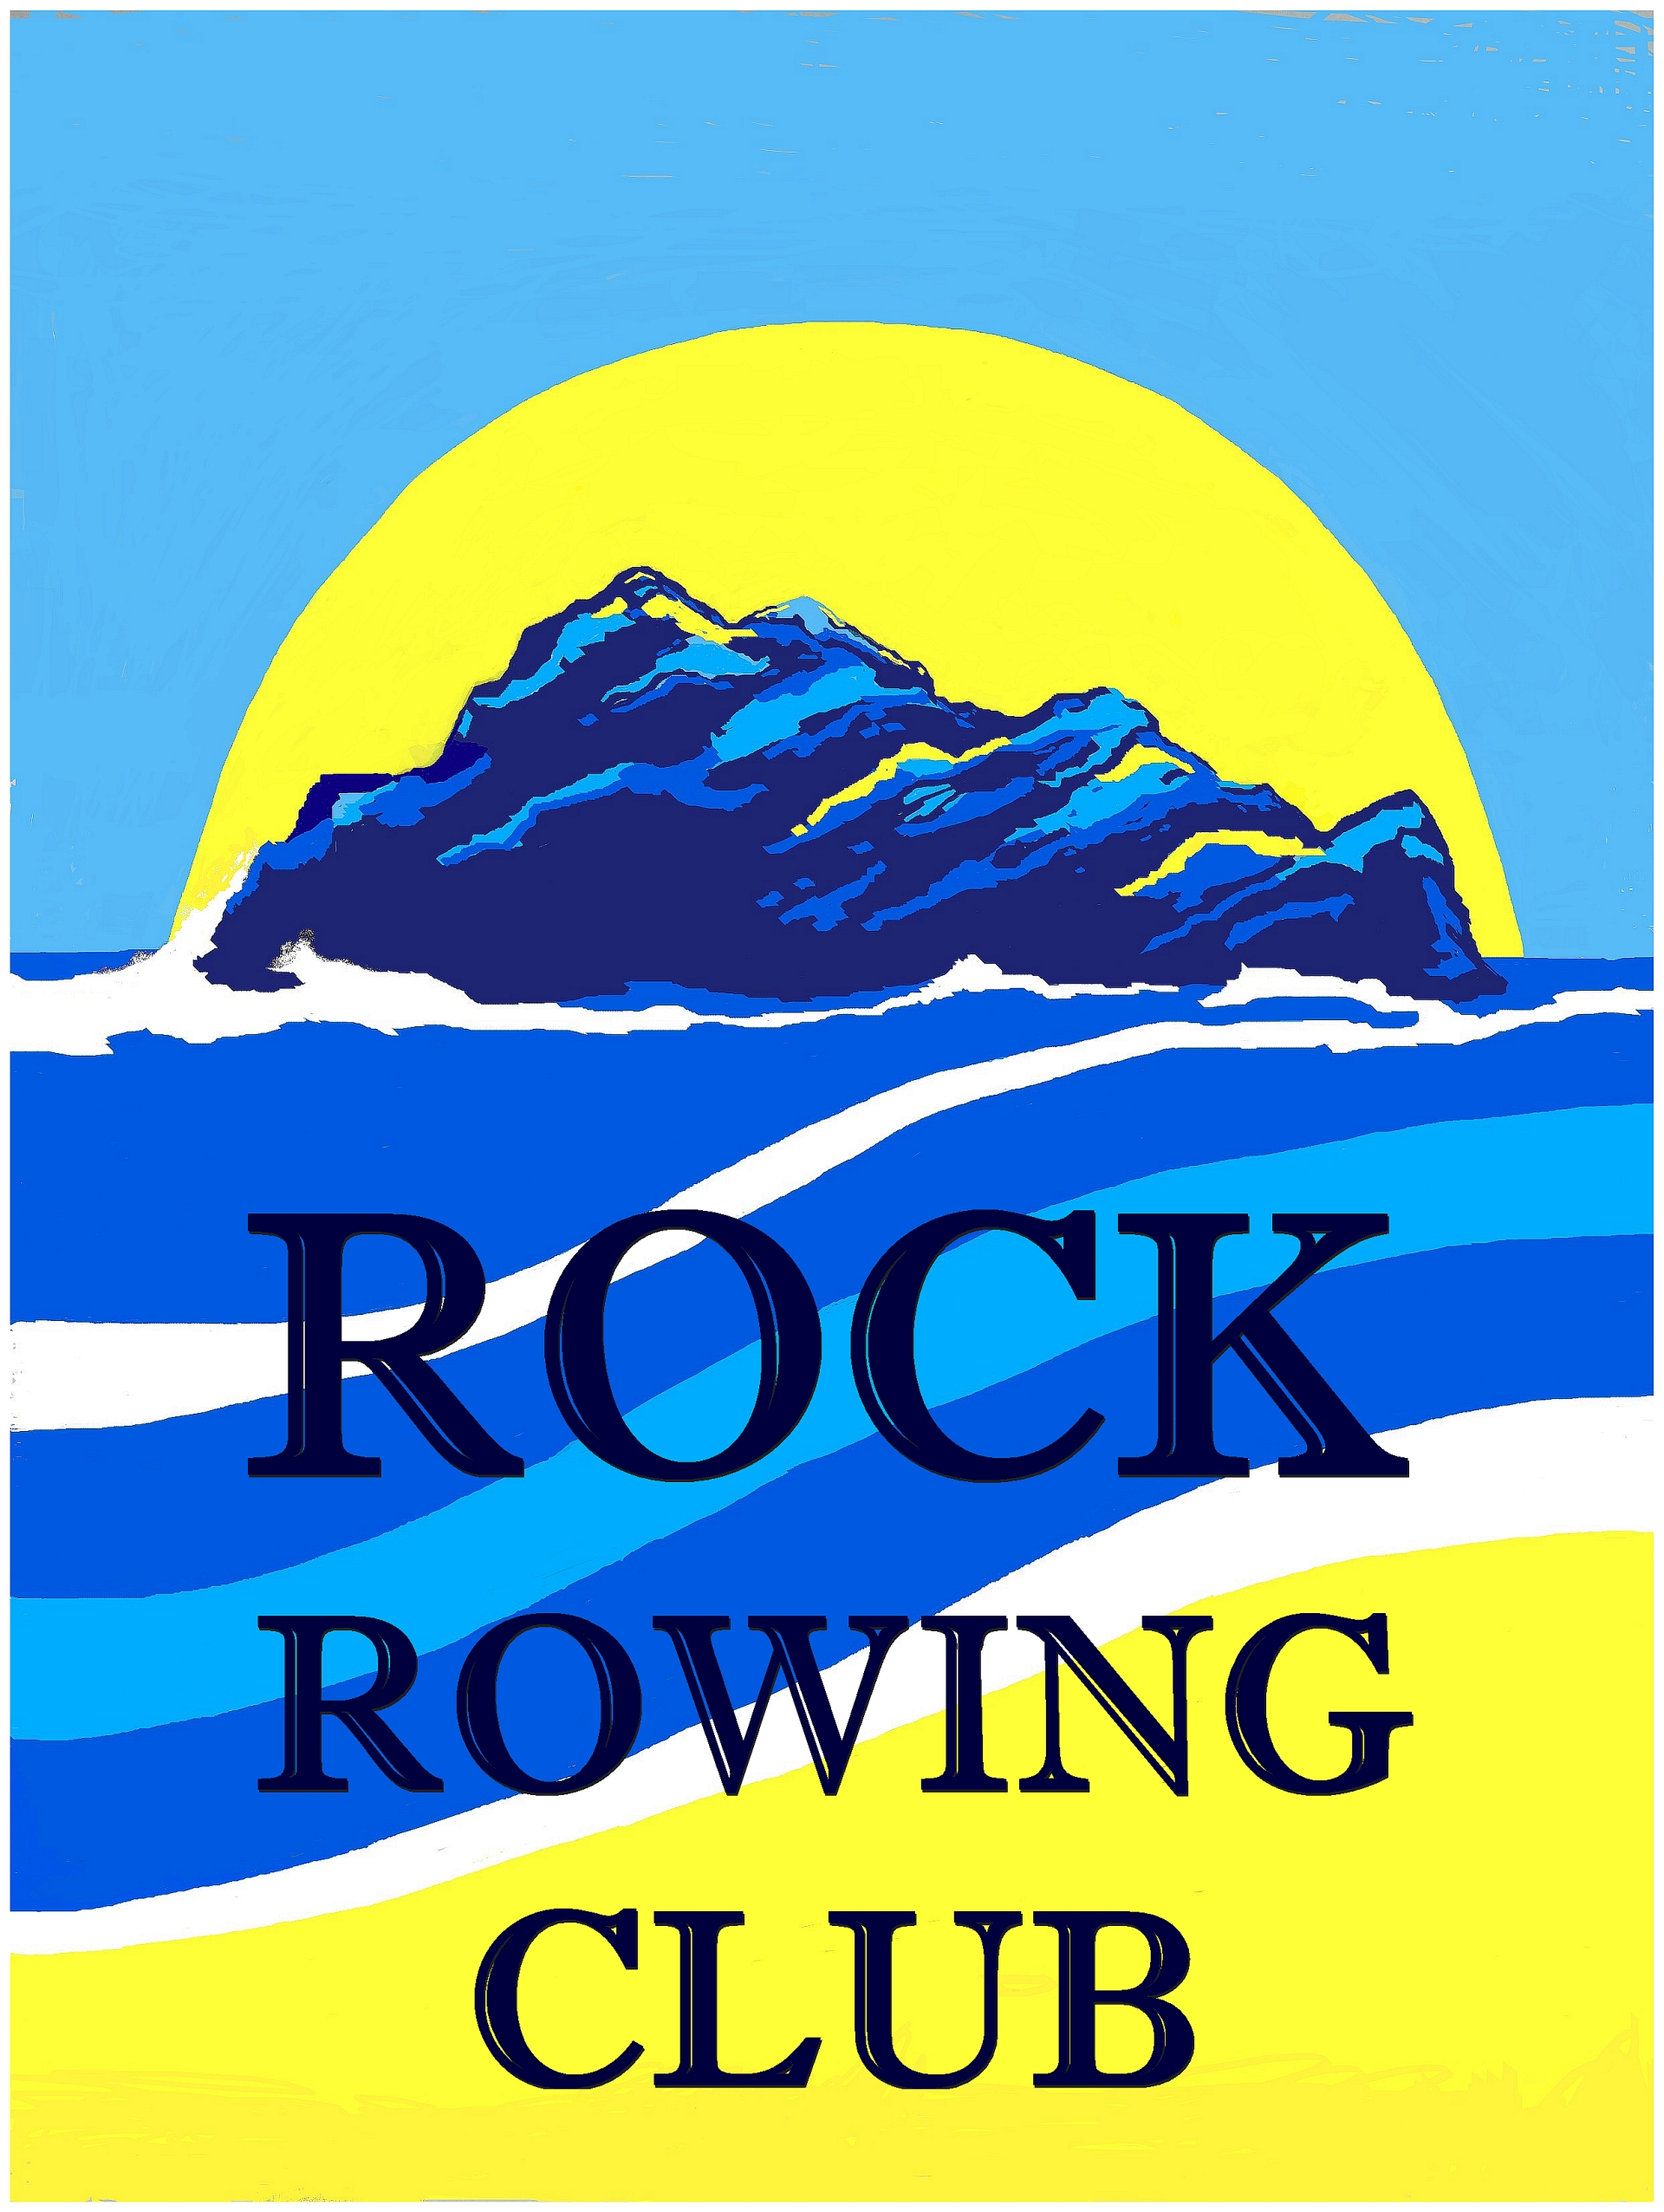 Rock Rowing Club Badge 2016 background f